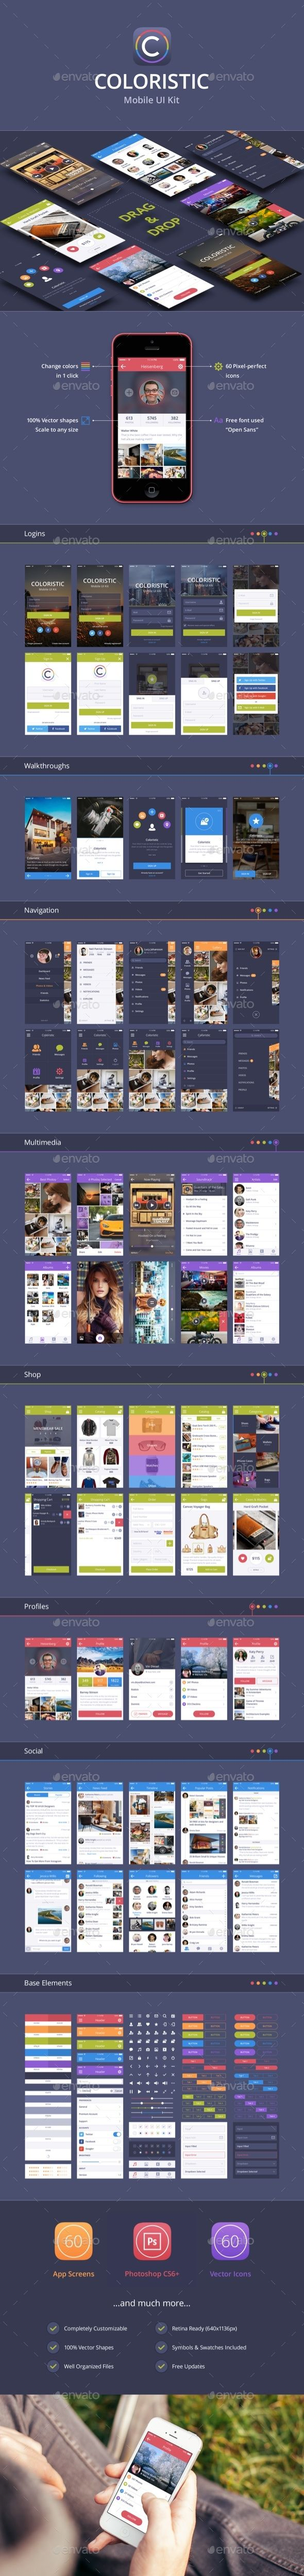 Coloristic: iOS/Android UI Kit (60 App Screens) - User Interfaces Web Elements